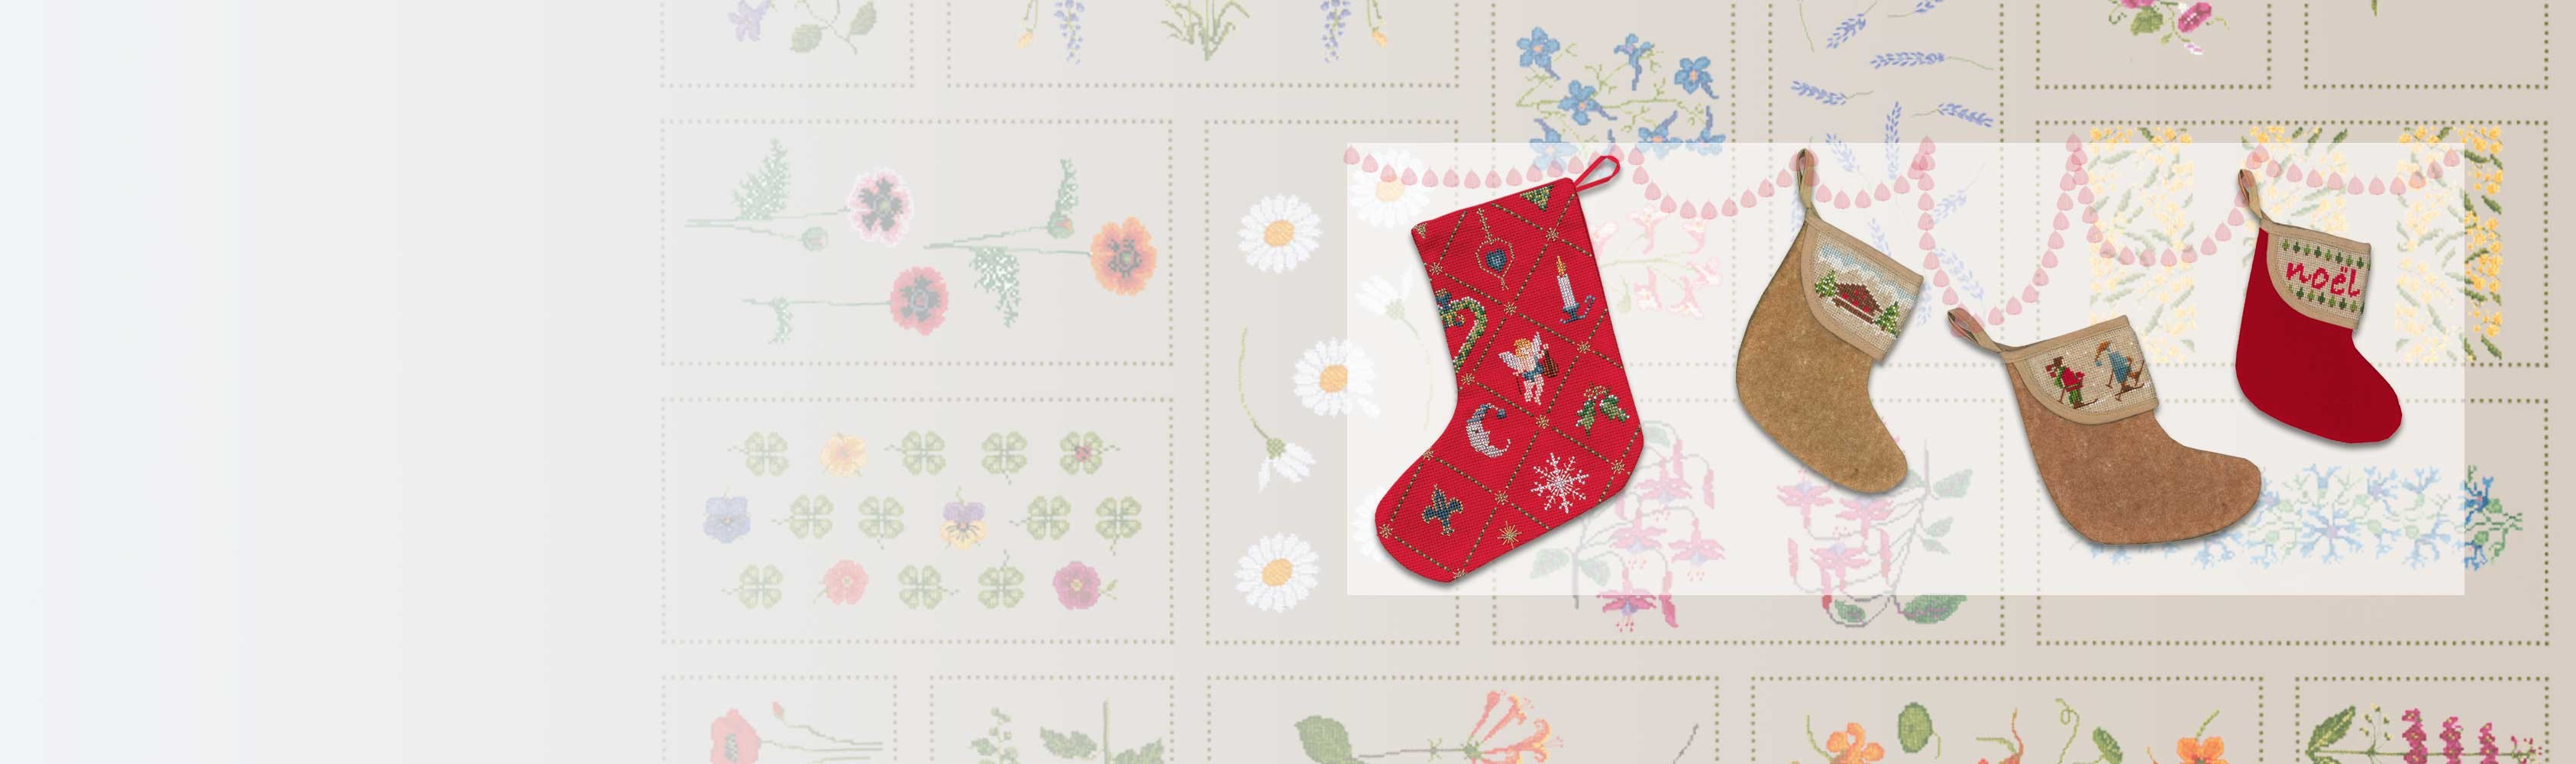 Christmas stockings kits to embroider by counted cross stitch series 70